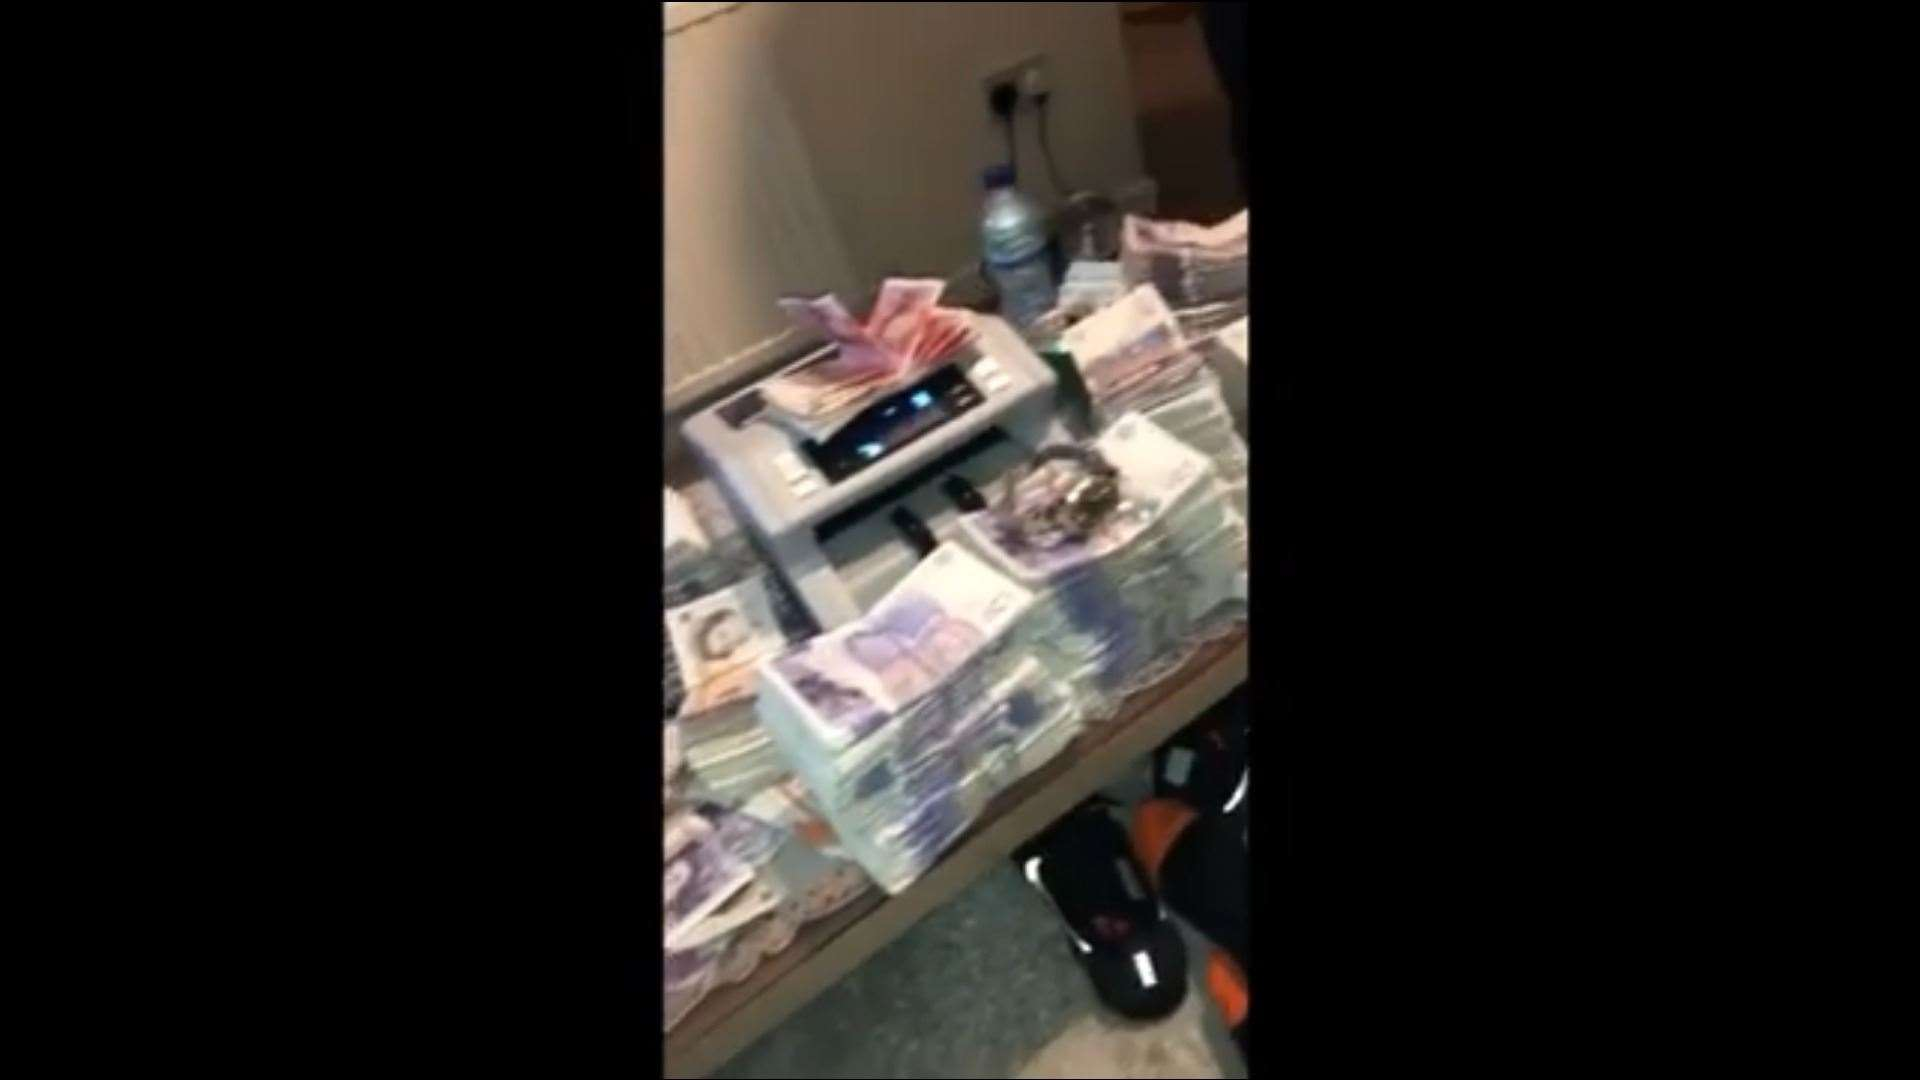 Money and a Rolex can be seen during the video (12213979)